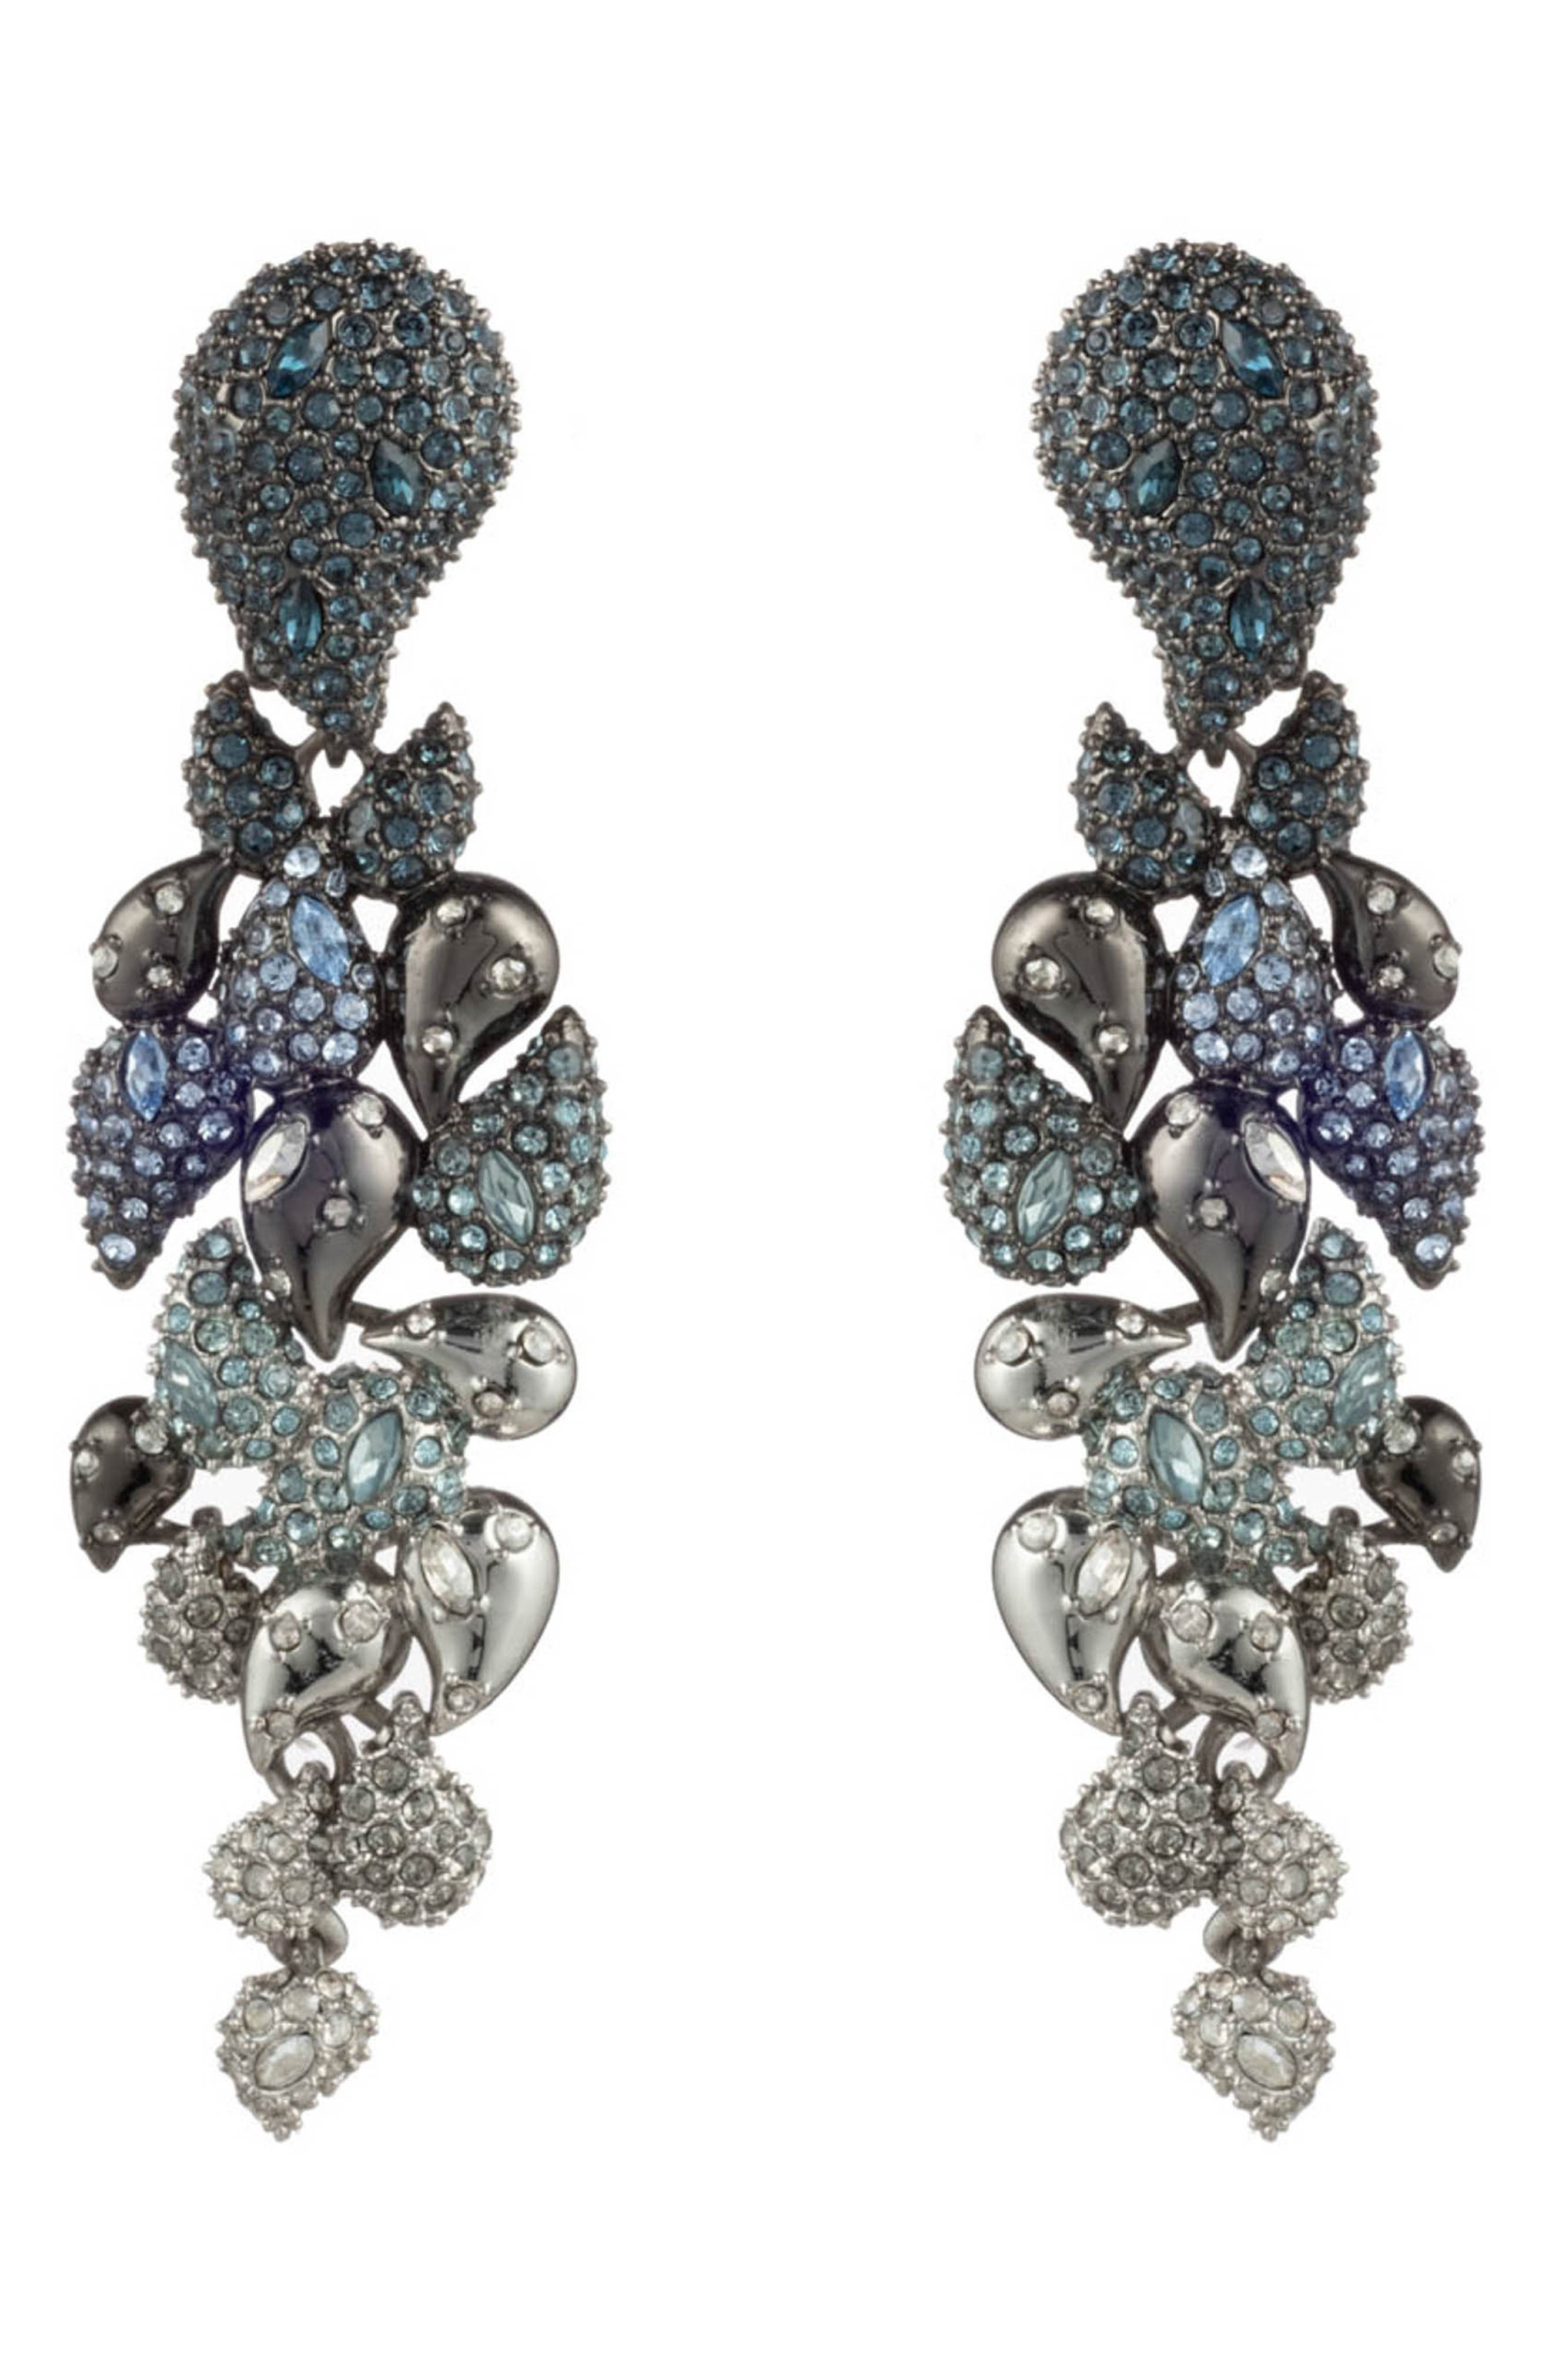 Winter Paisley Crystal Encrusted Ombre Statement Clip Earrings in Blue